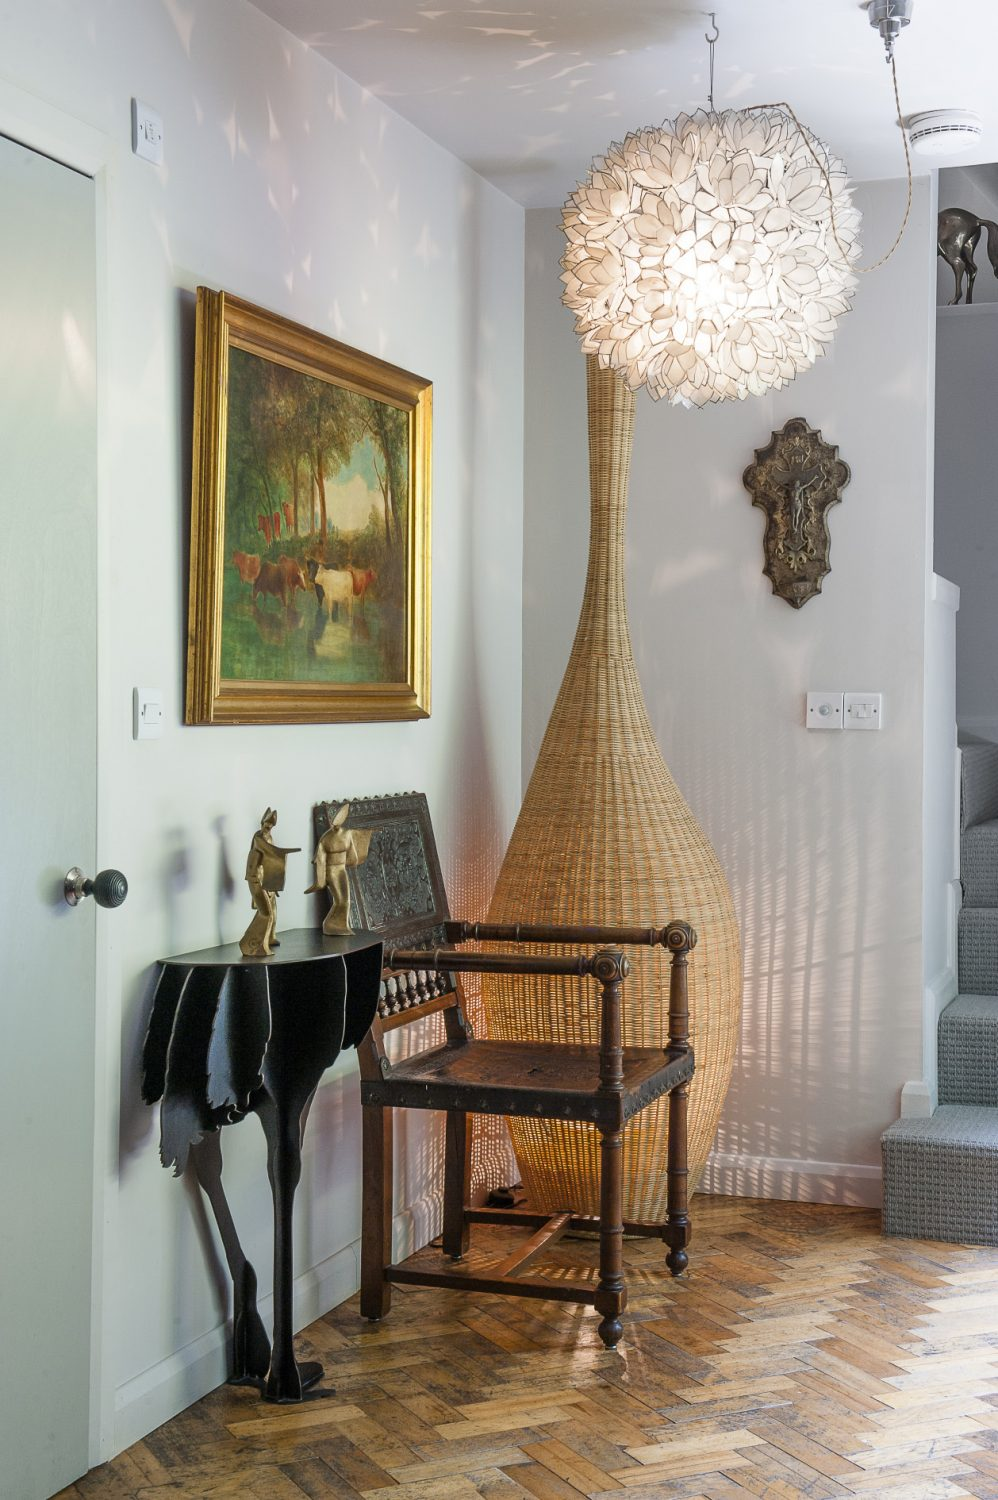 The wicker bowling pin lamp was from the Conran Shop and the Diva Ostrich table is by iBide from Abigail Ahern. The 18th century tooled leather French chair is a family heirloom, as is the oil painting above it. Sebastien laid the salvaged parquet himself